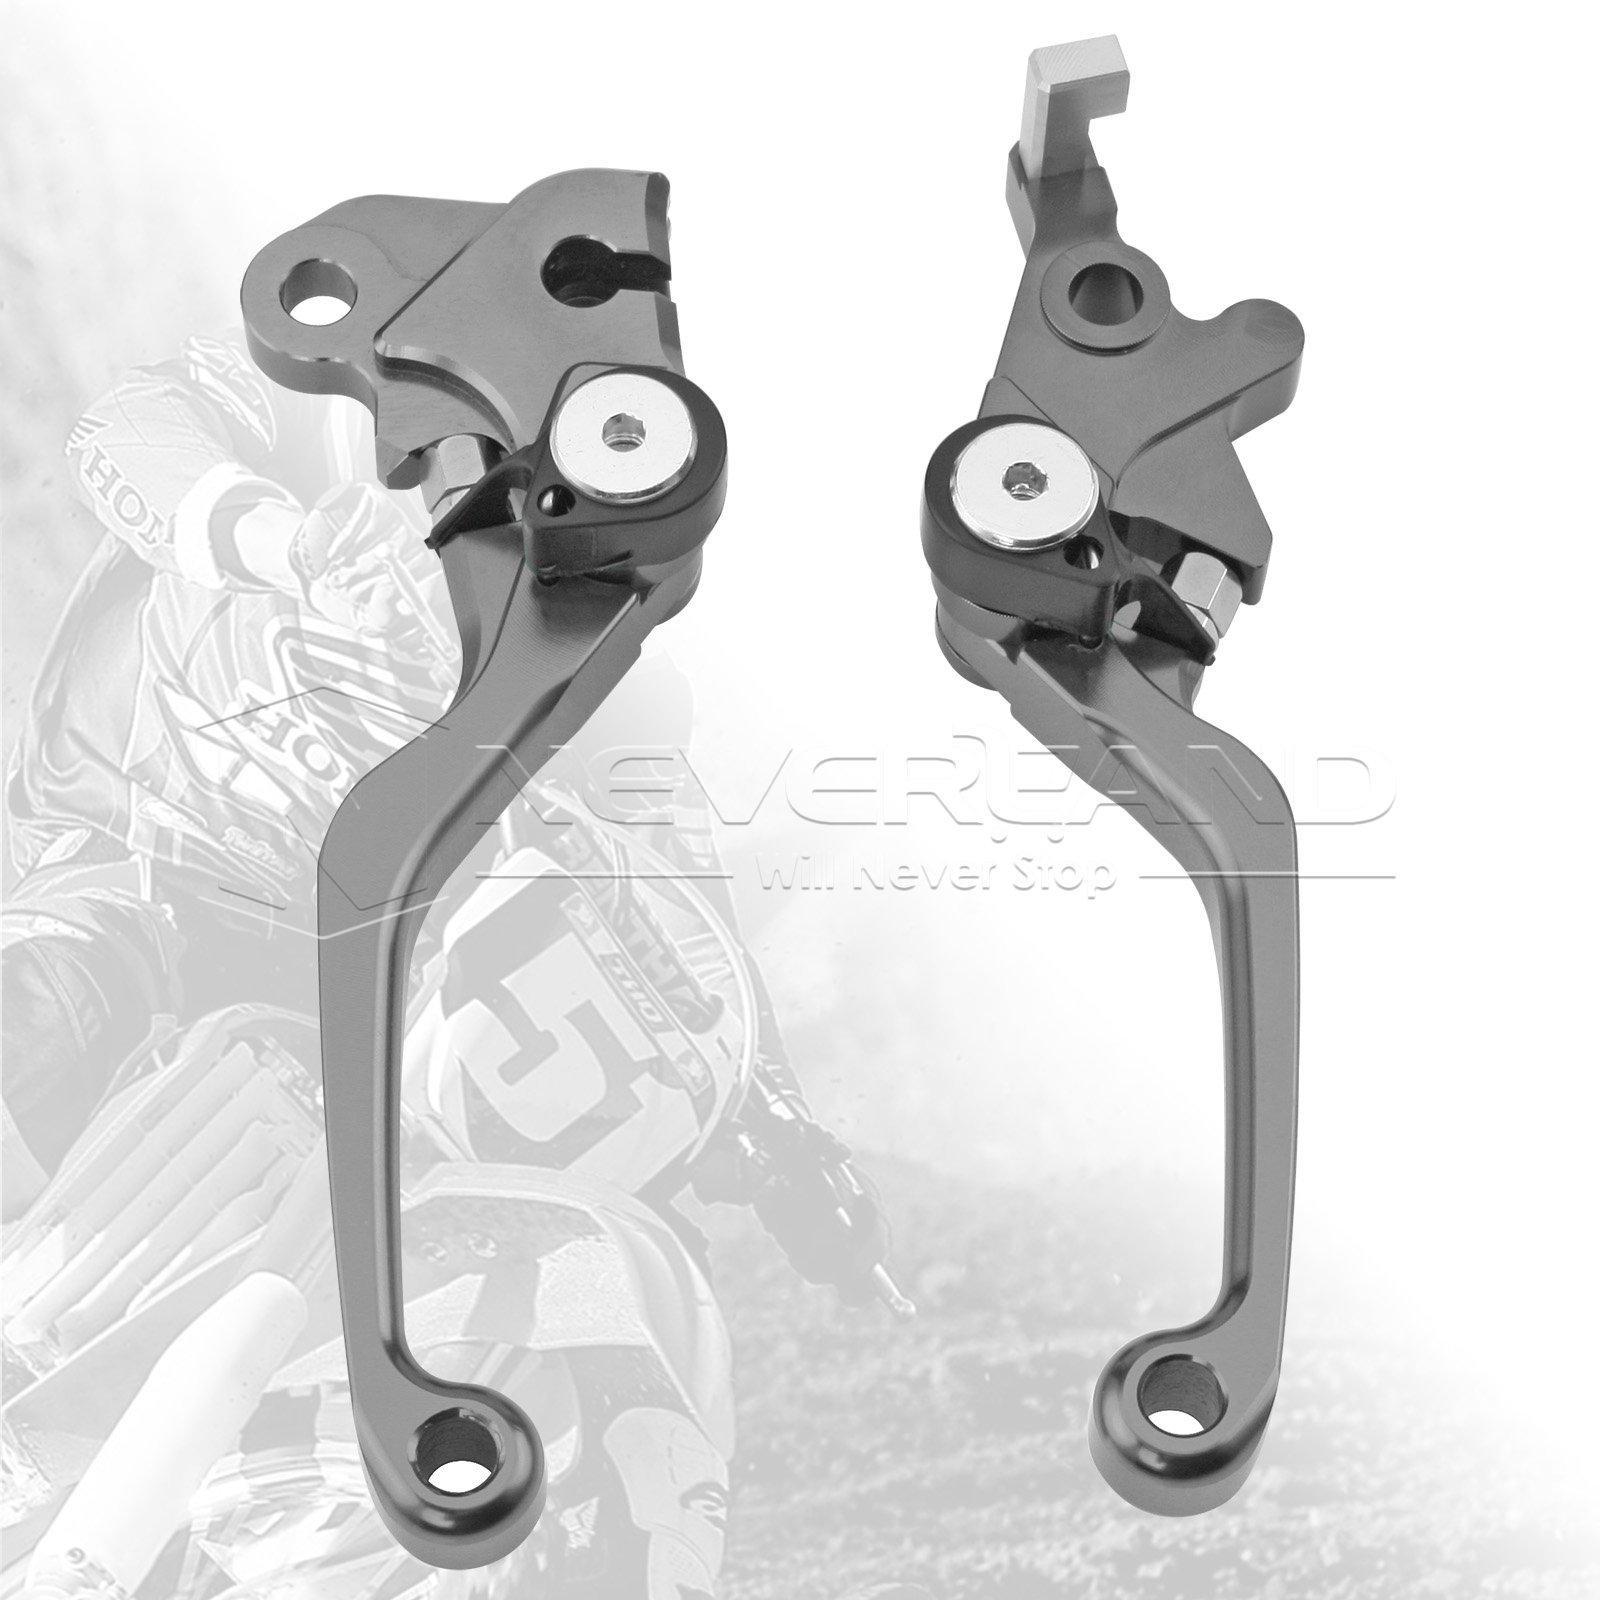 One Pair CNC Pivot Brake Clutch Levers For Honda SL230 1997-2004 XR230/MOTARD 2005-2012 L03K/R05K Titanium D10<br><br>Aliexpress